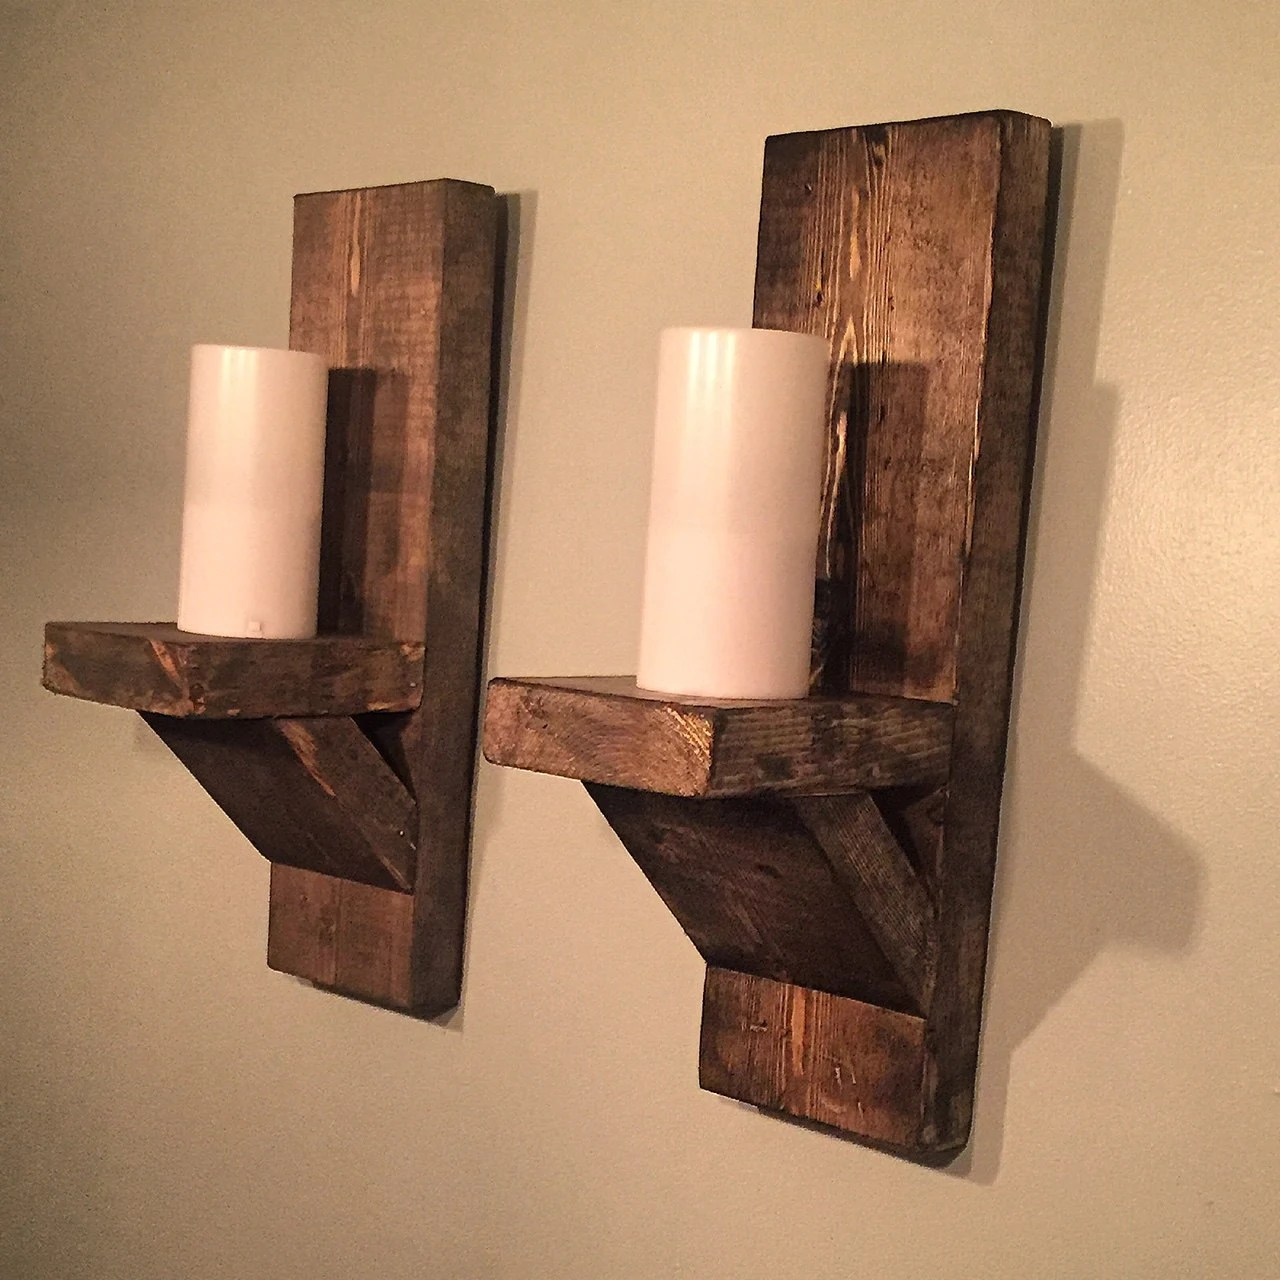 Rustic Candle Sconce Pair//Wall Sconce//Farmhouse on Rustic Wall Sconces id=93353